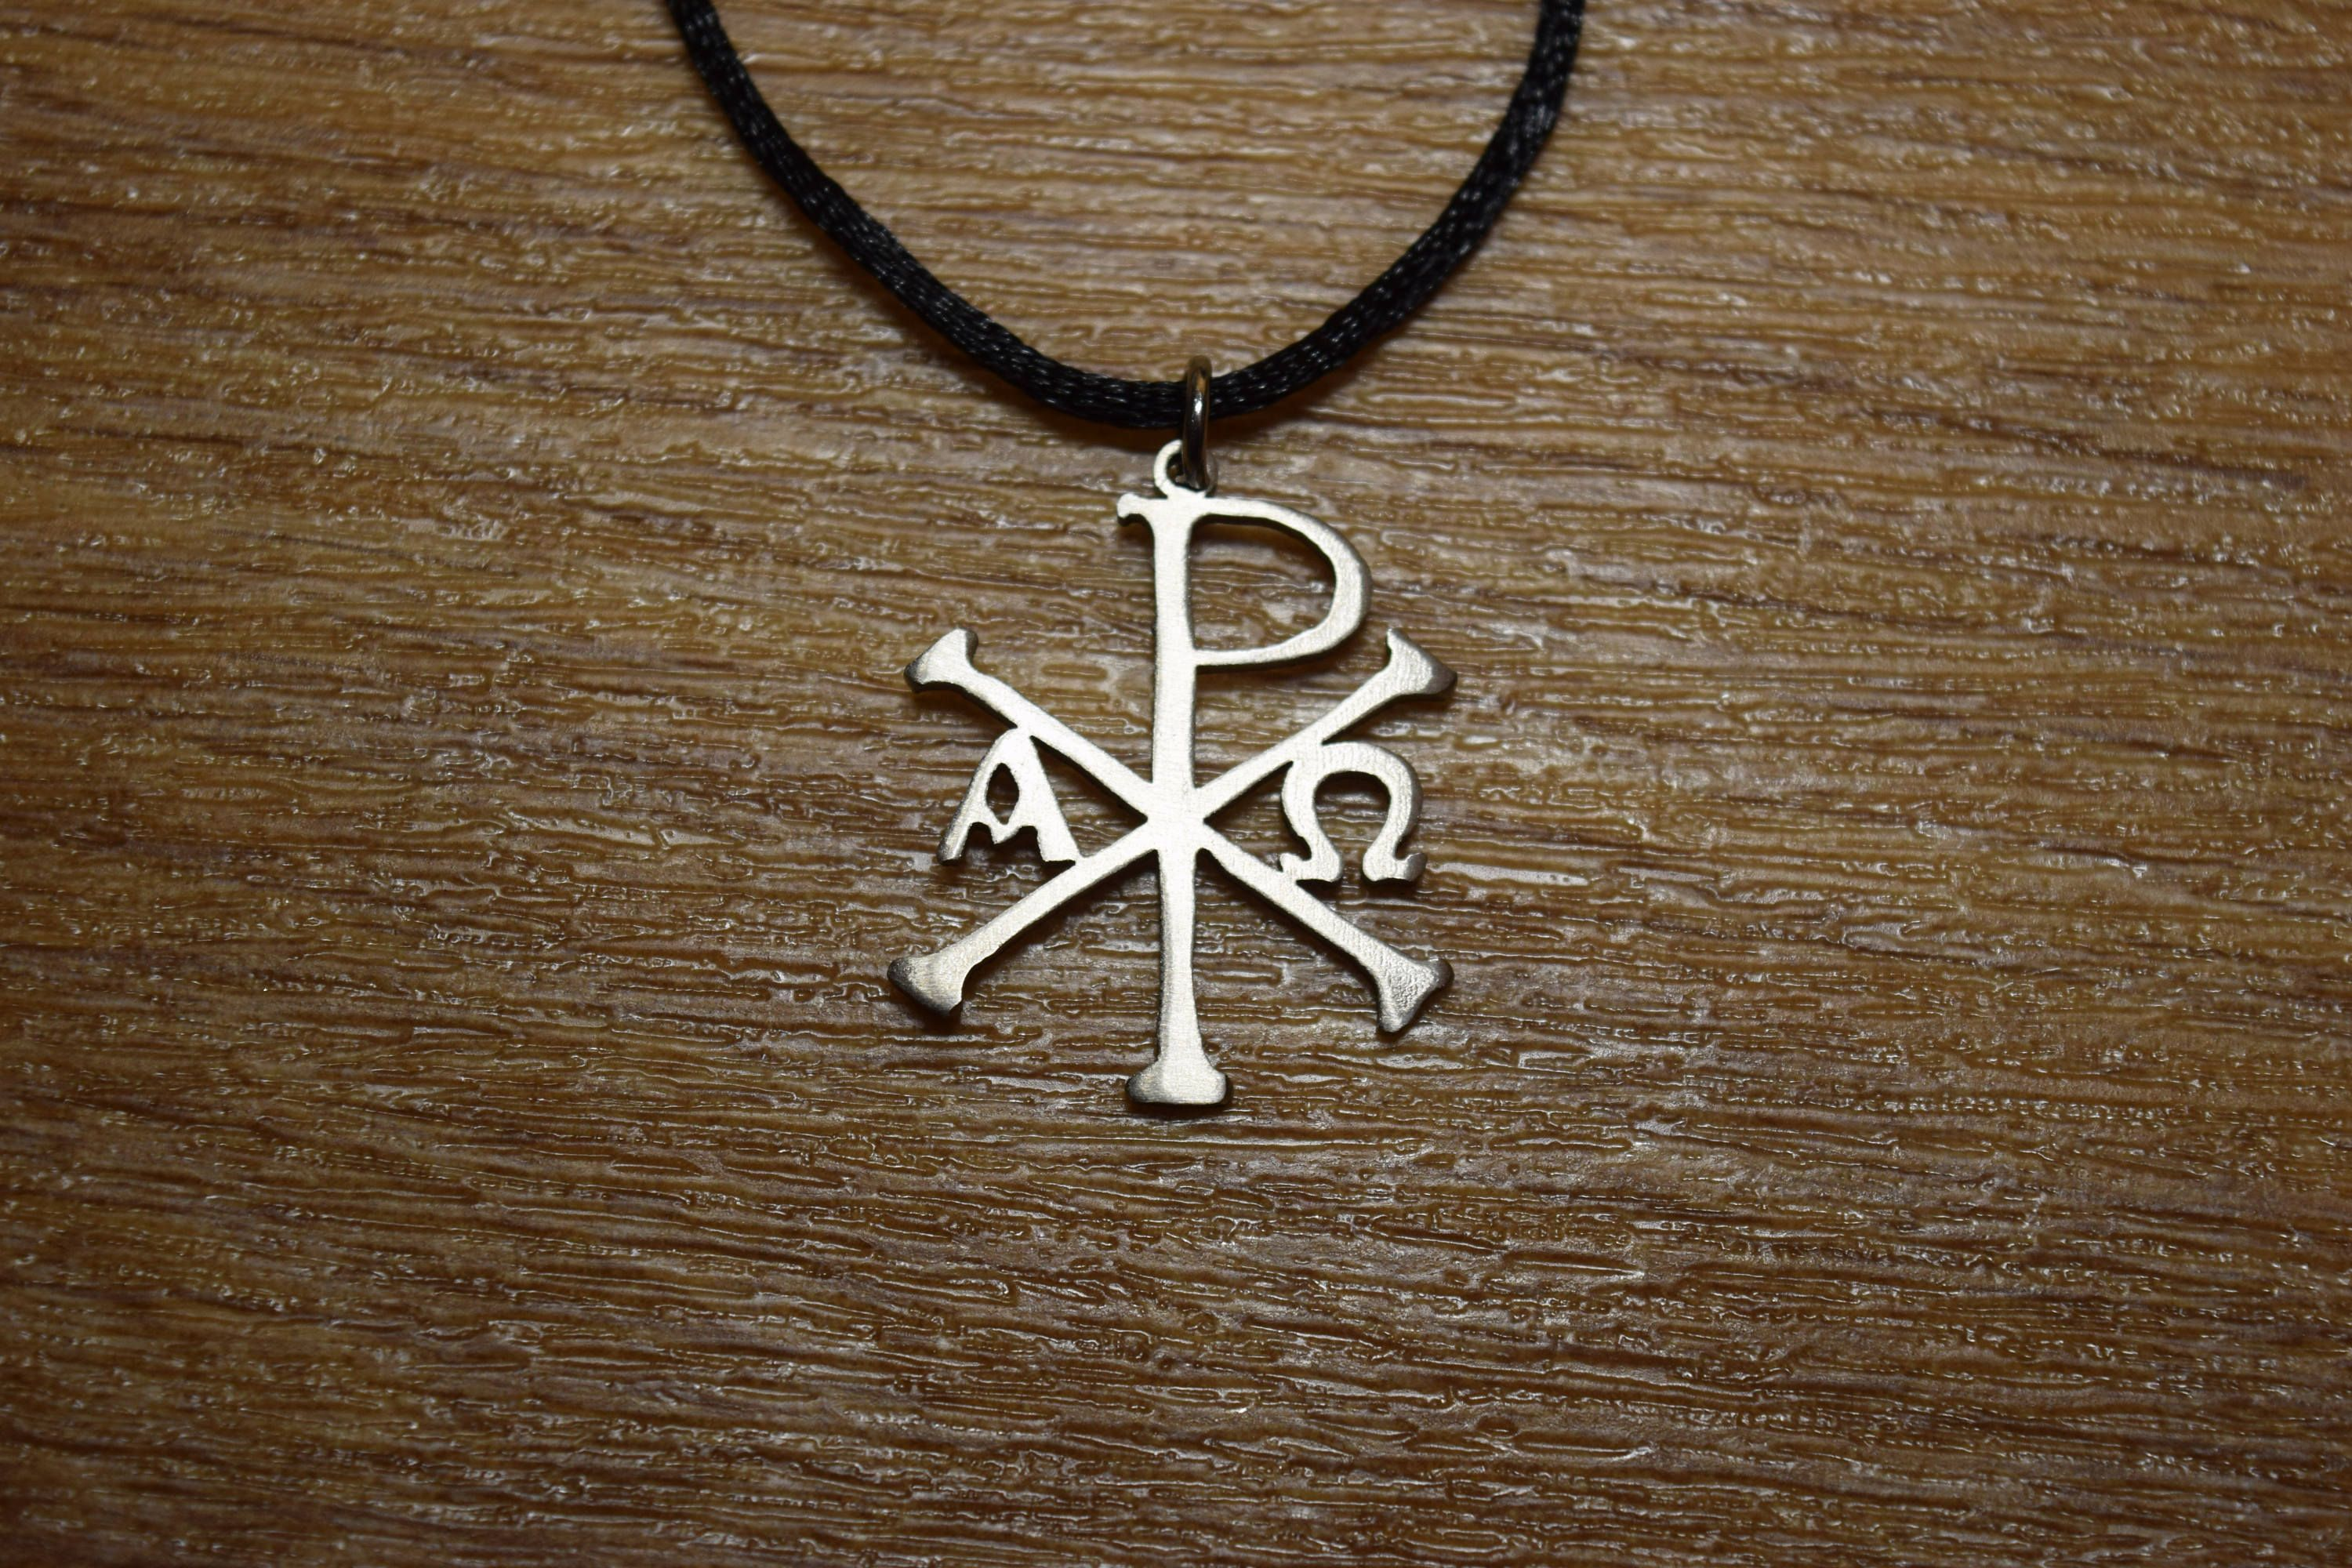 Chi rho and constantine cross alpha and omega christian jewelry chi rho and constantine cross alpha and omega christian jewelry christmas gift pendant necklace pendant buycottarizona Images